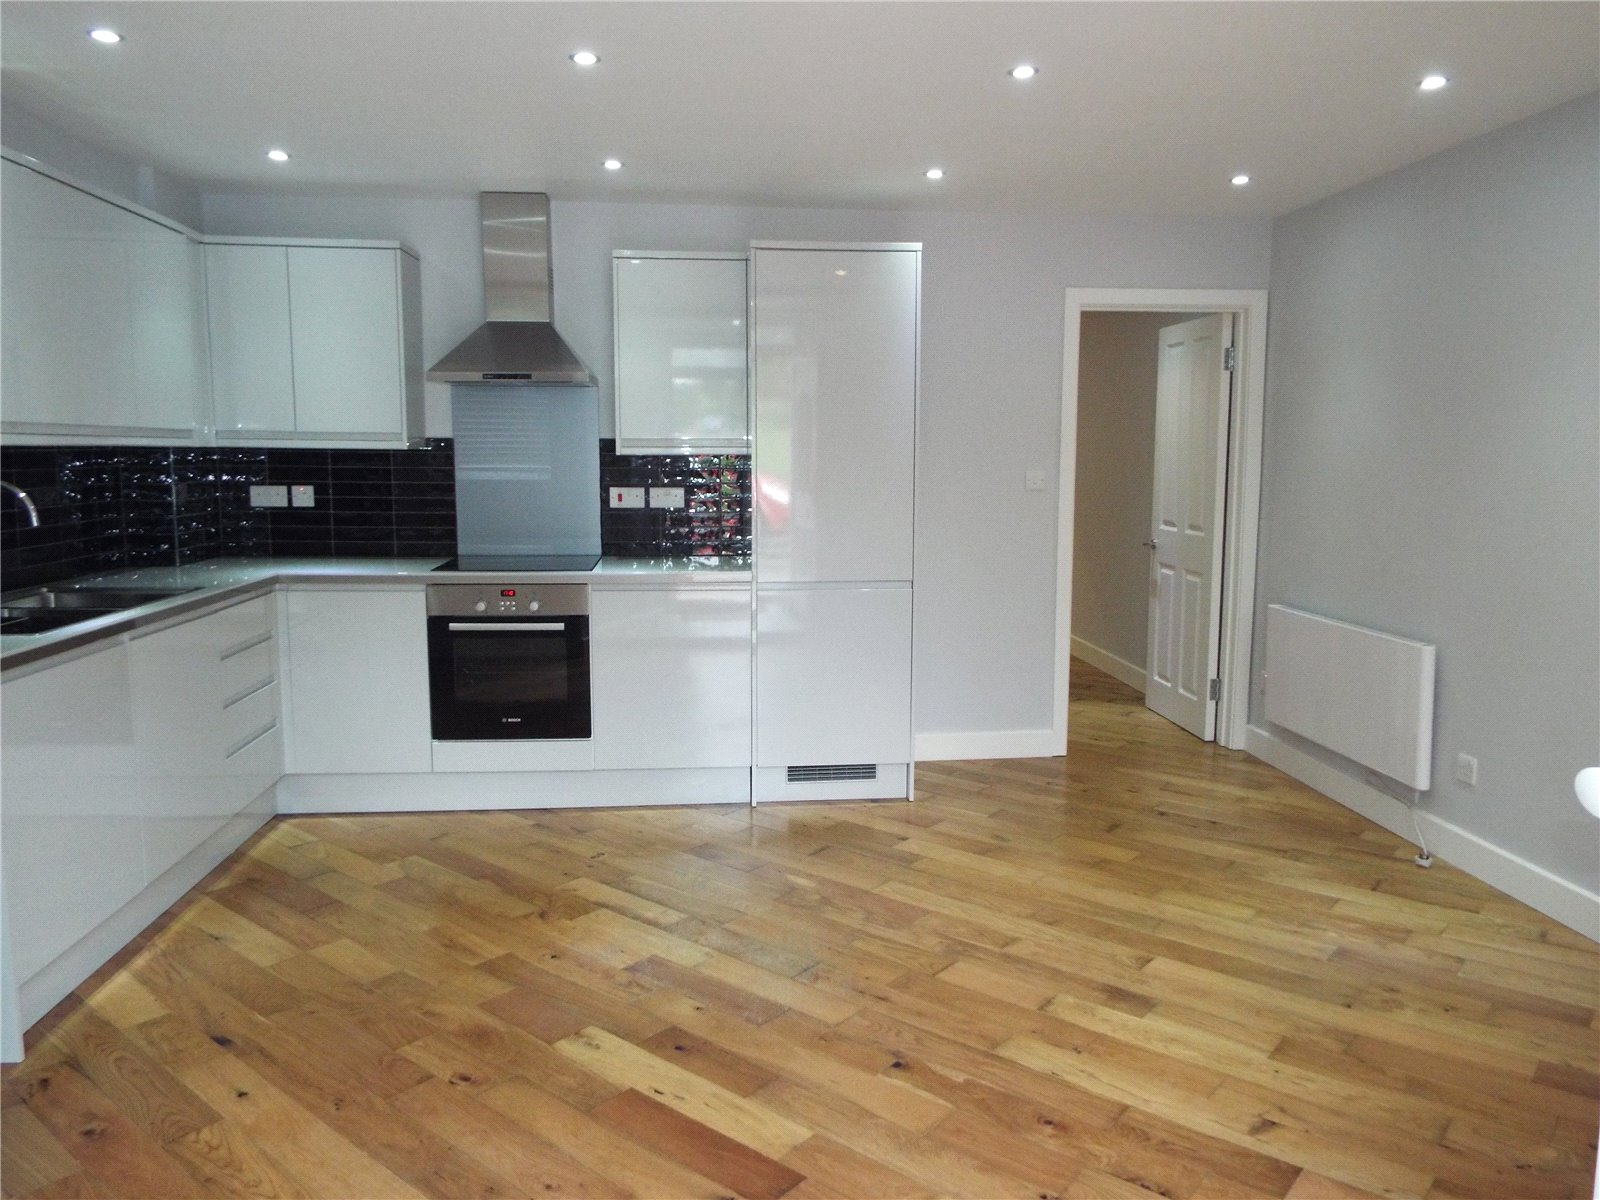 1 bed house to rent in Potters Bar, EN6 1EY, EN6